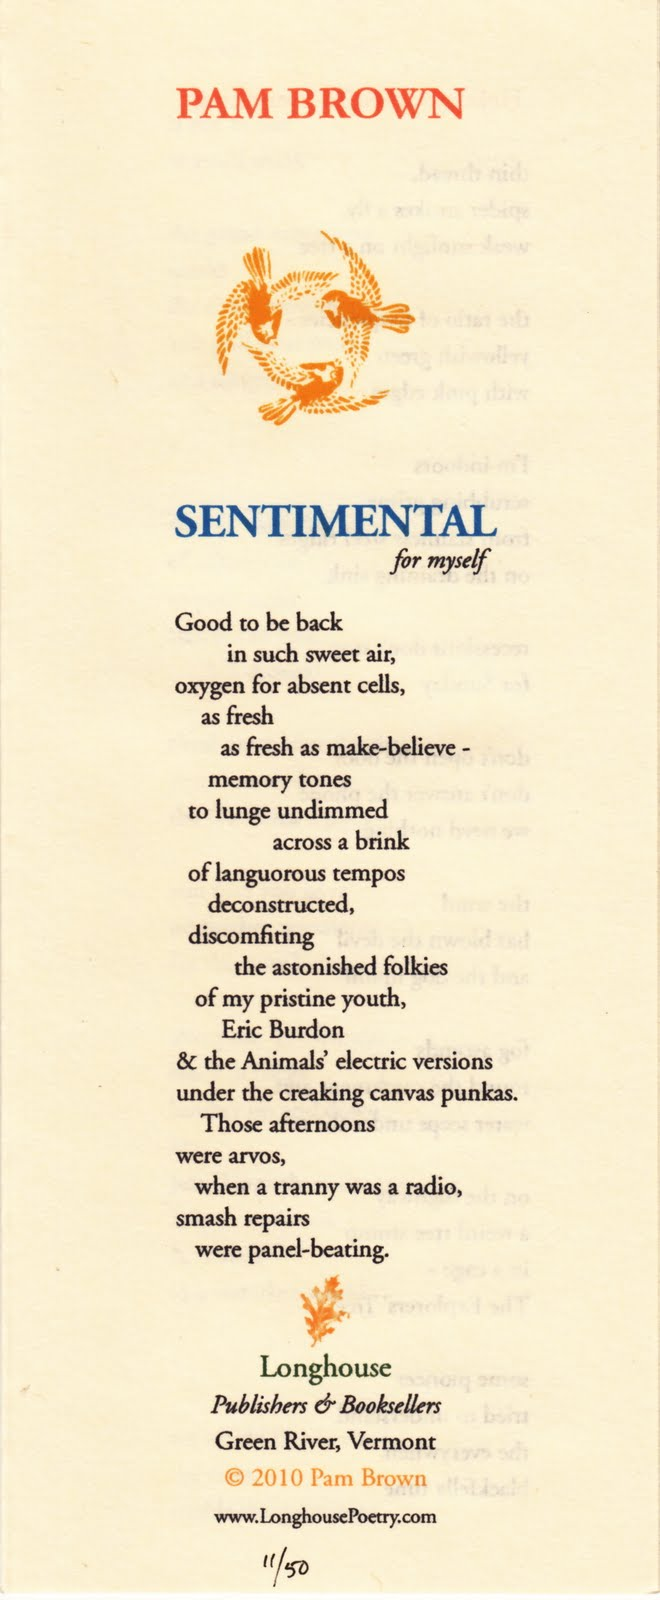 schiller essay on naive and sentimental poetry The title of this work is adapted from on naïve and sentimental poetry' a 1795 essay by schiller who regarded the naïve artist as one for whom art is a natural.